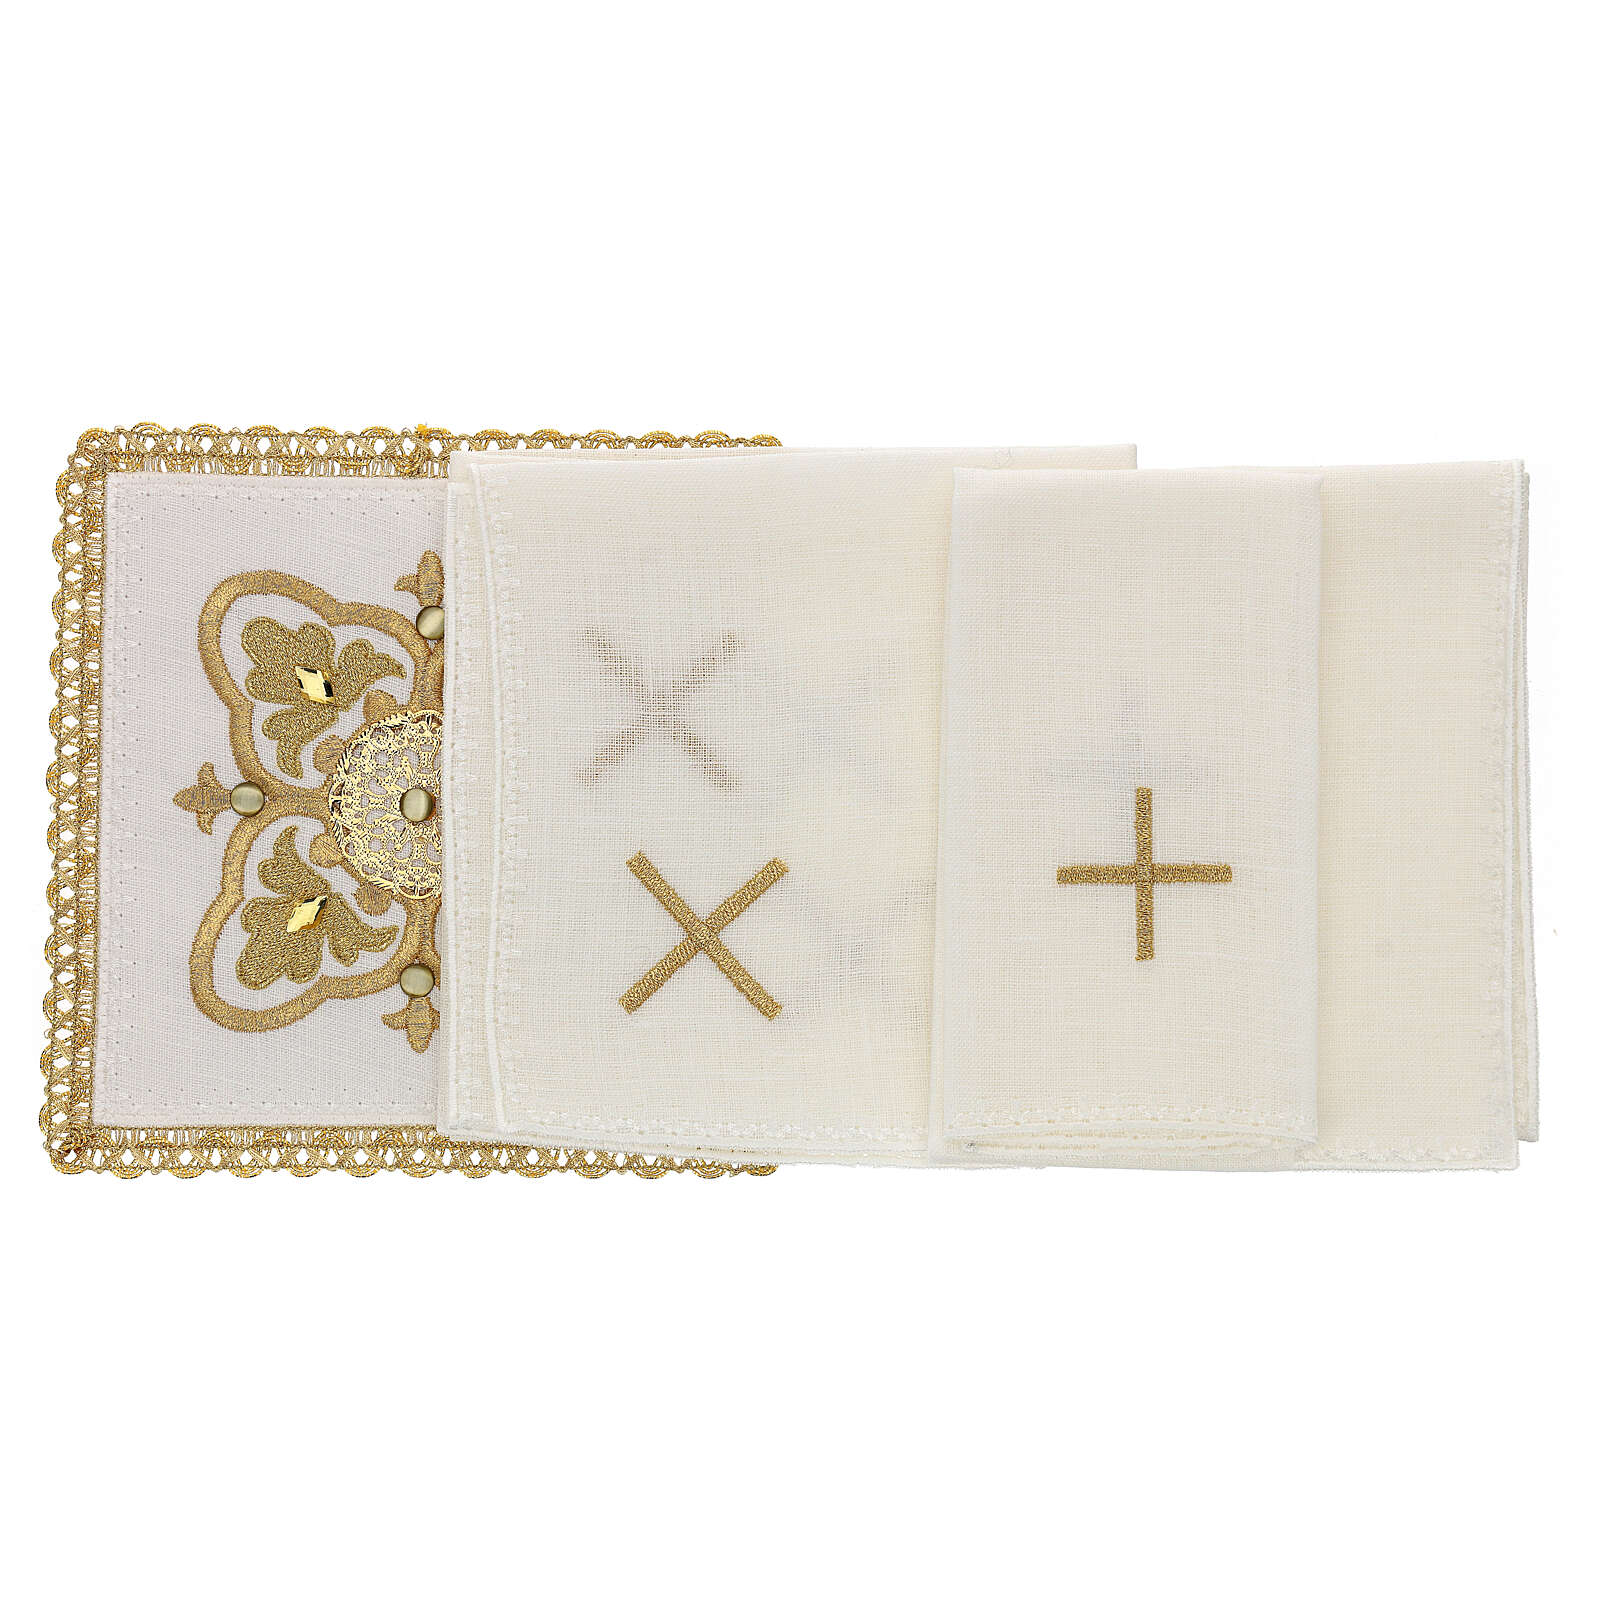 Church linen set 4 pcs, 100% linen gold embroidered Limited Edition 4